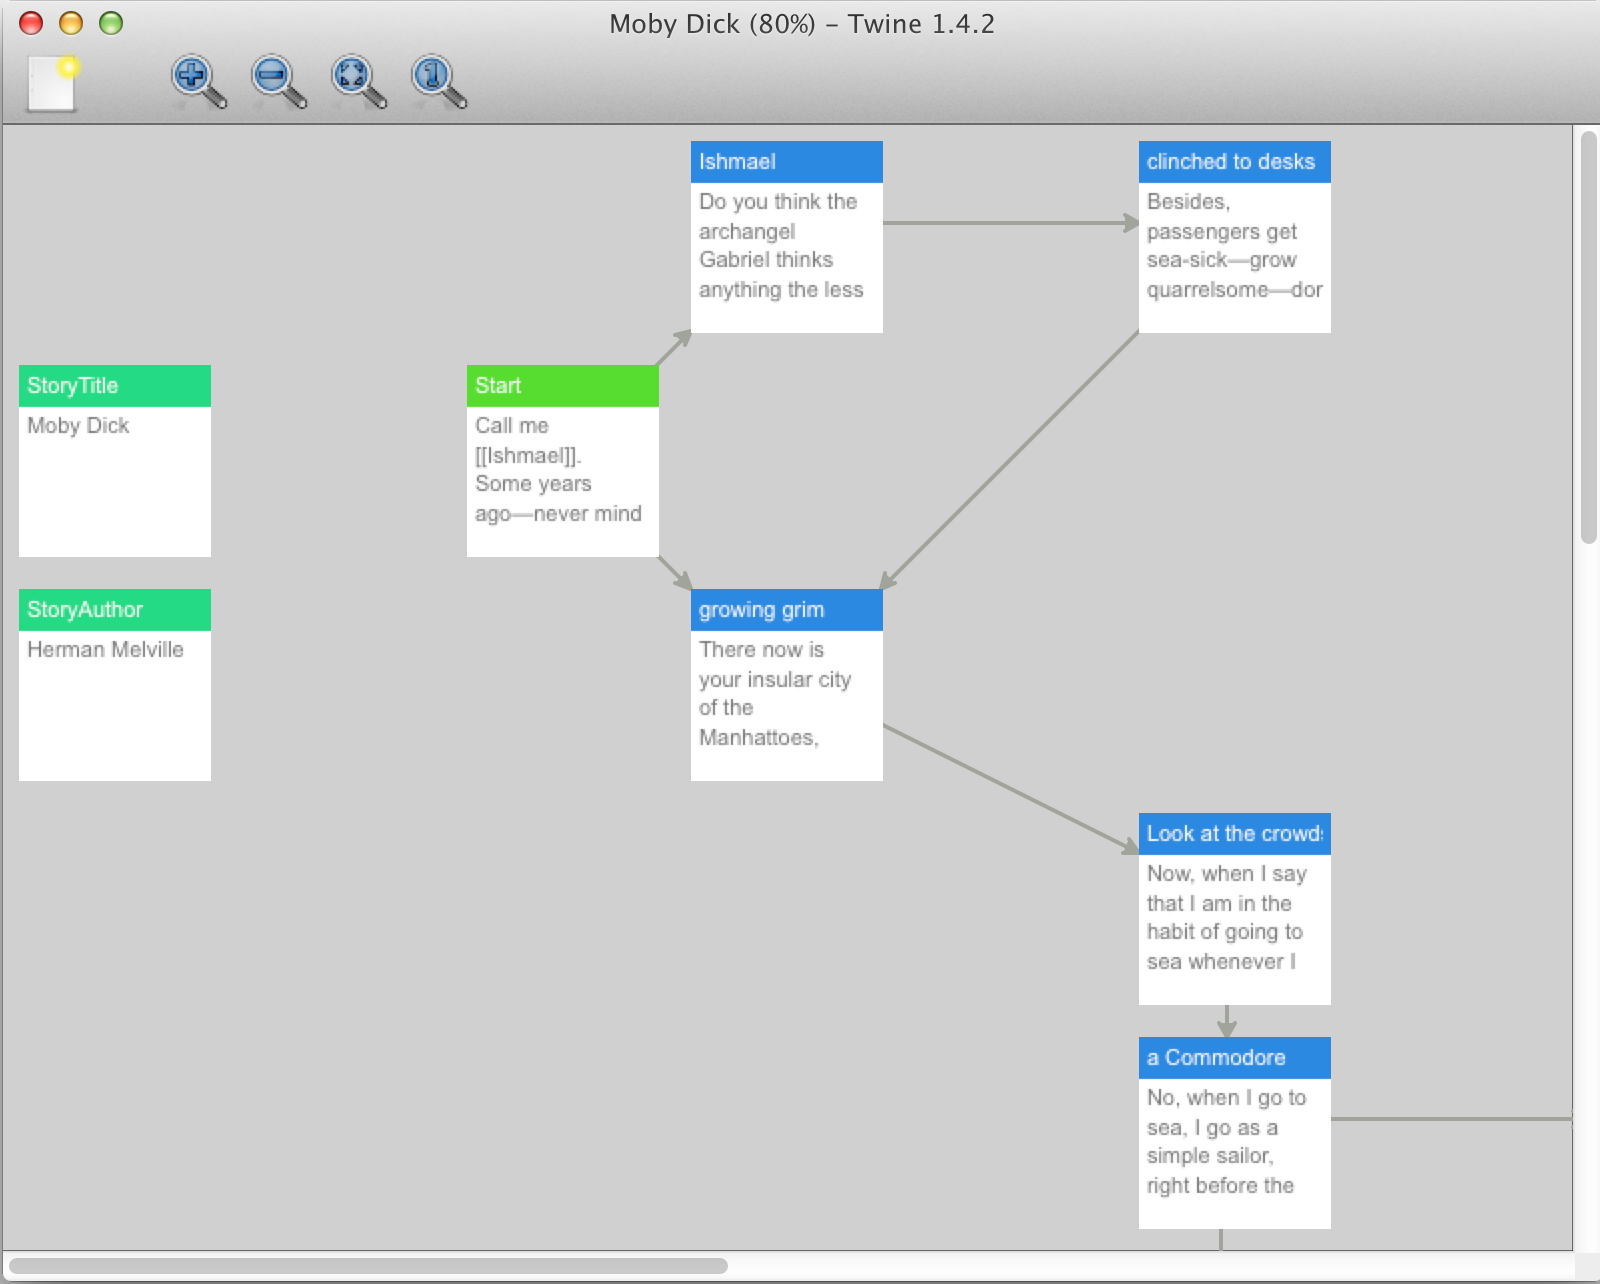 Twine is an online edtech platform that allows users to